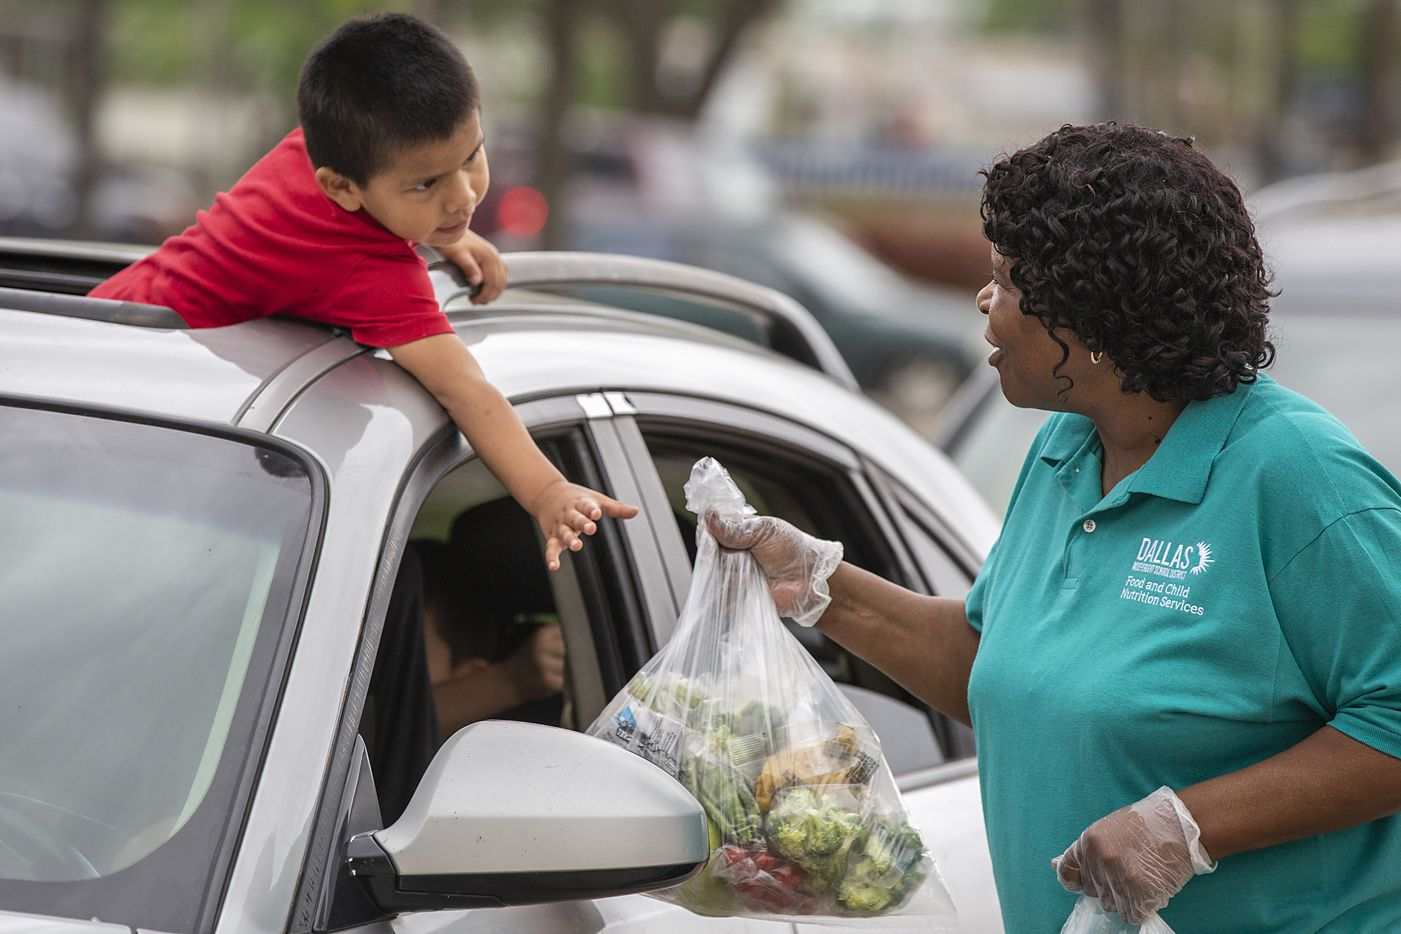 """As he hangs out of his family's car sunroof, Isaias Ovalle, 3, reaches for bagged school meals from food service supervisor Patricia Jackson at Francisco """"Pancho"""" Medrano Middle School in Dallas on Thursday, April 2, 2020. Many families of students struggle with food insecurity, exacerbated by COVID-19 closures, yet DISD announced it would eliminate Monday food distribution and limit its efforts to Thursdays only."""